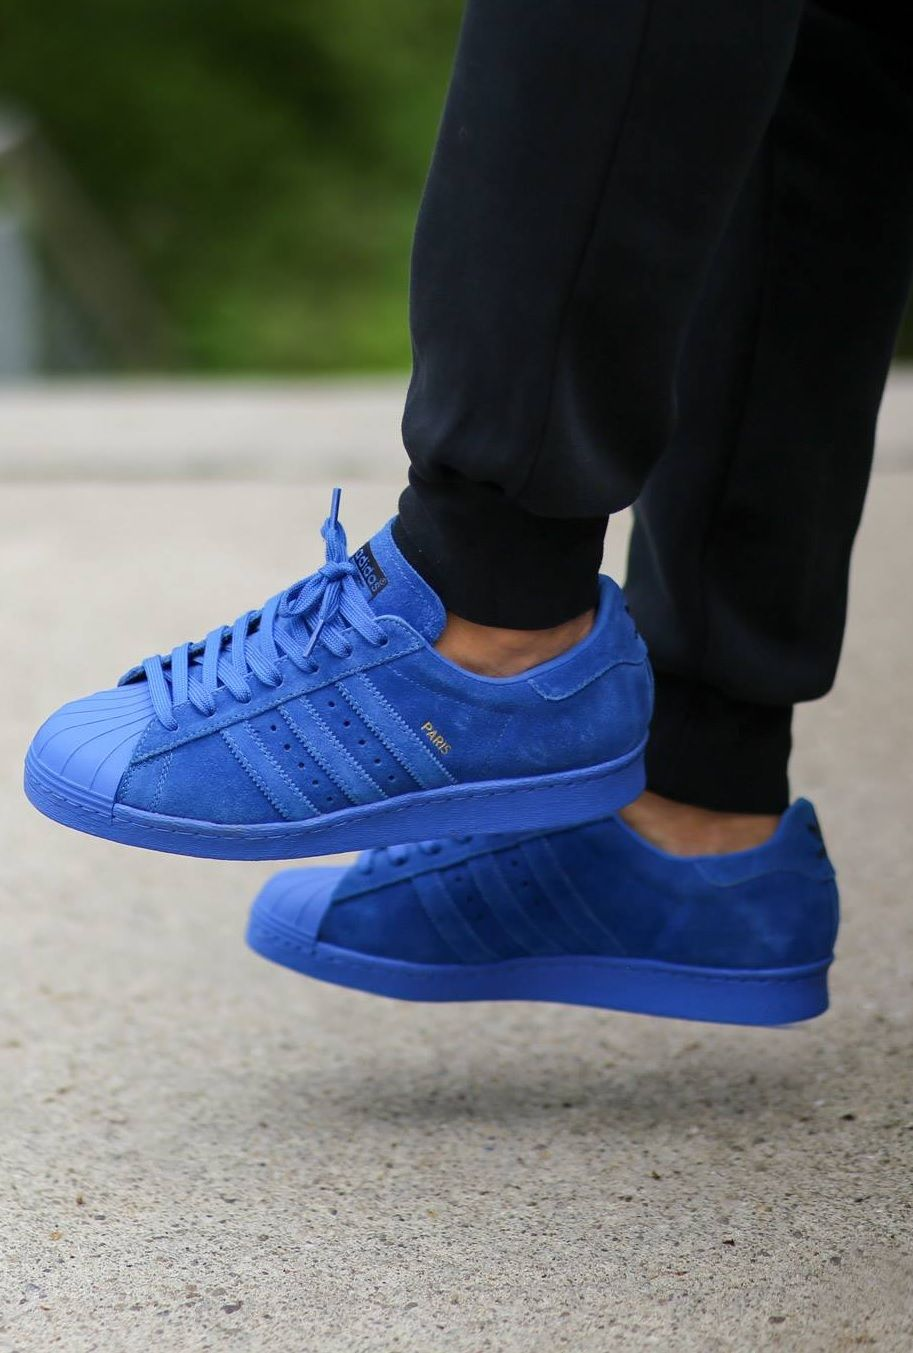 adidas superstar men Blue